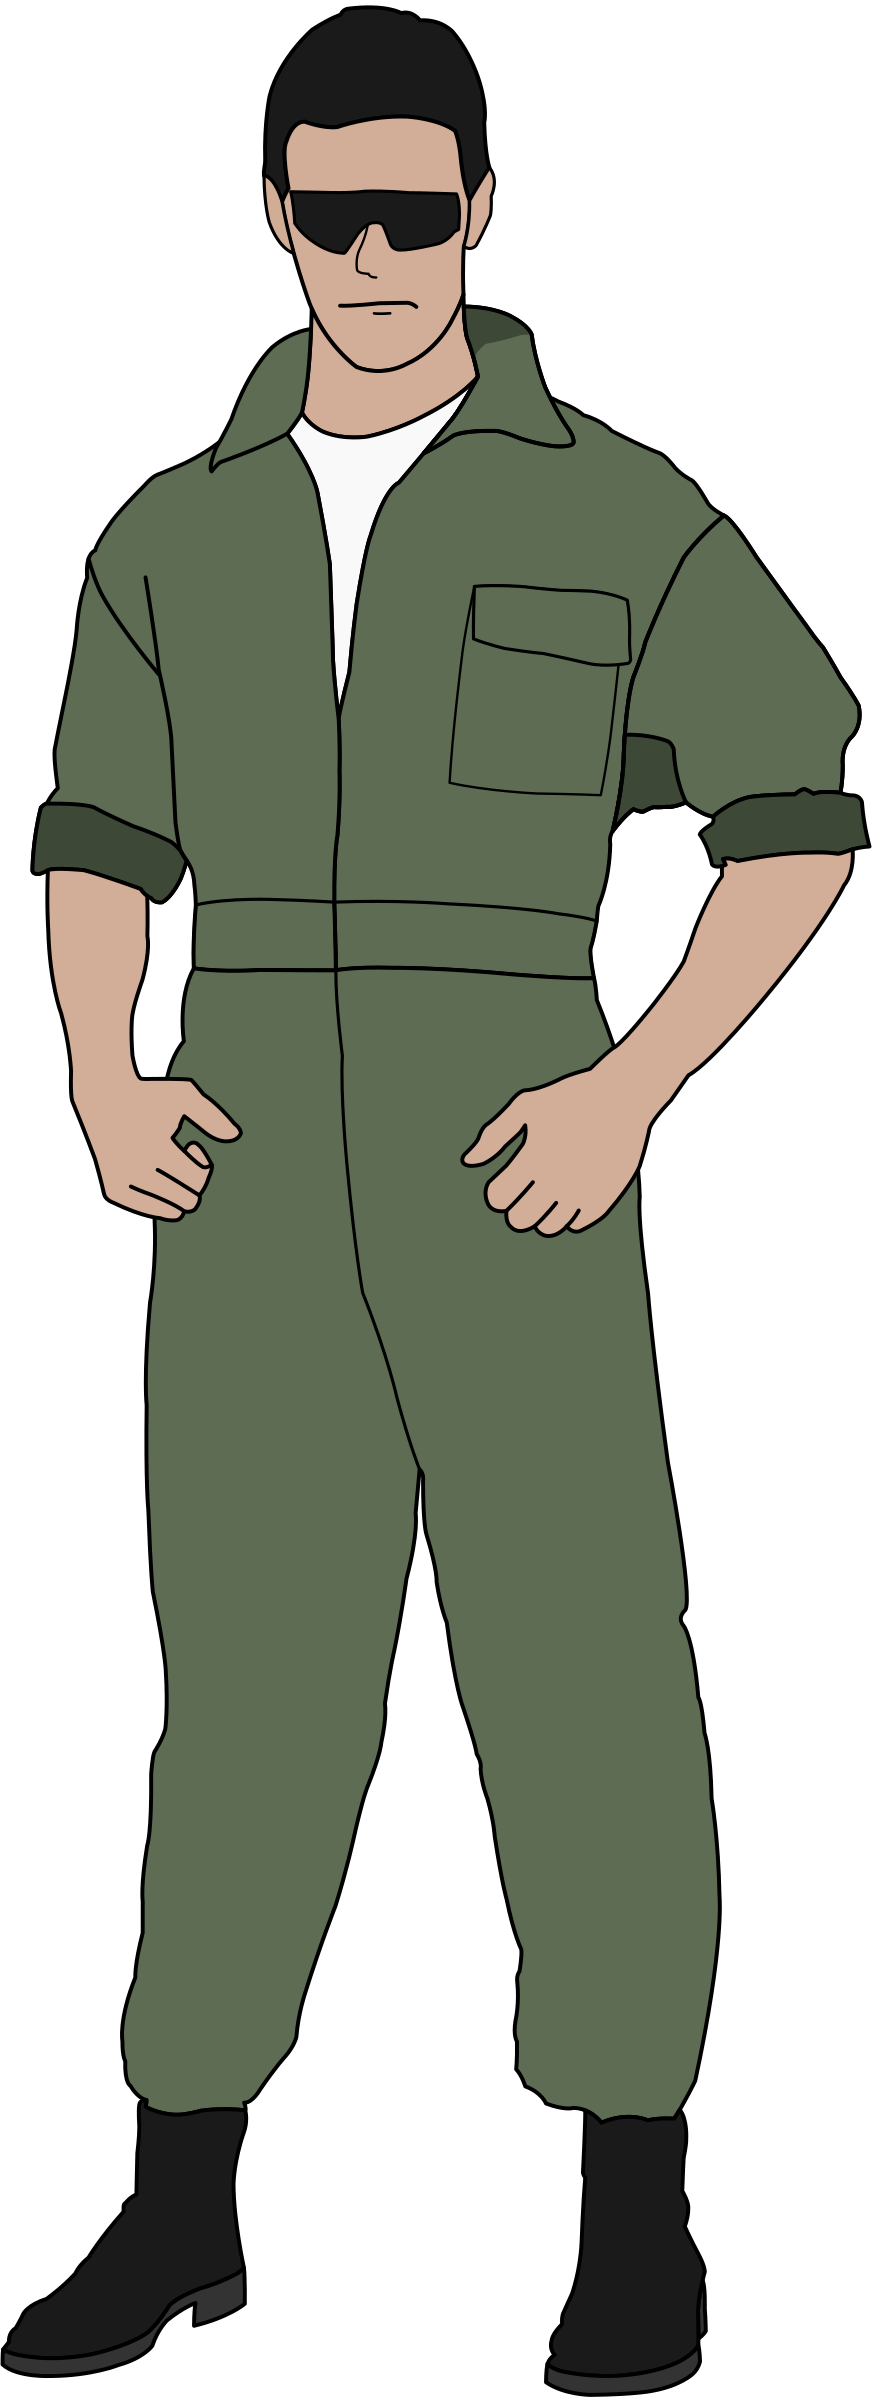 Fighter clipart military pilot. Big image png